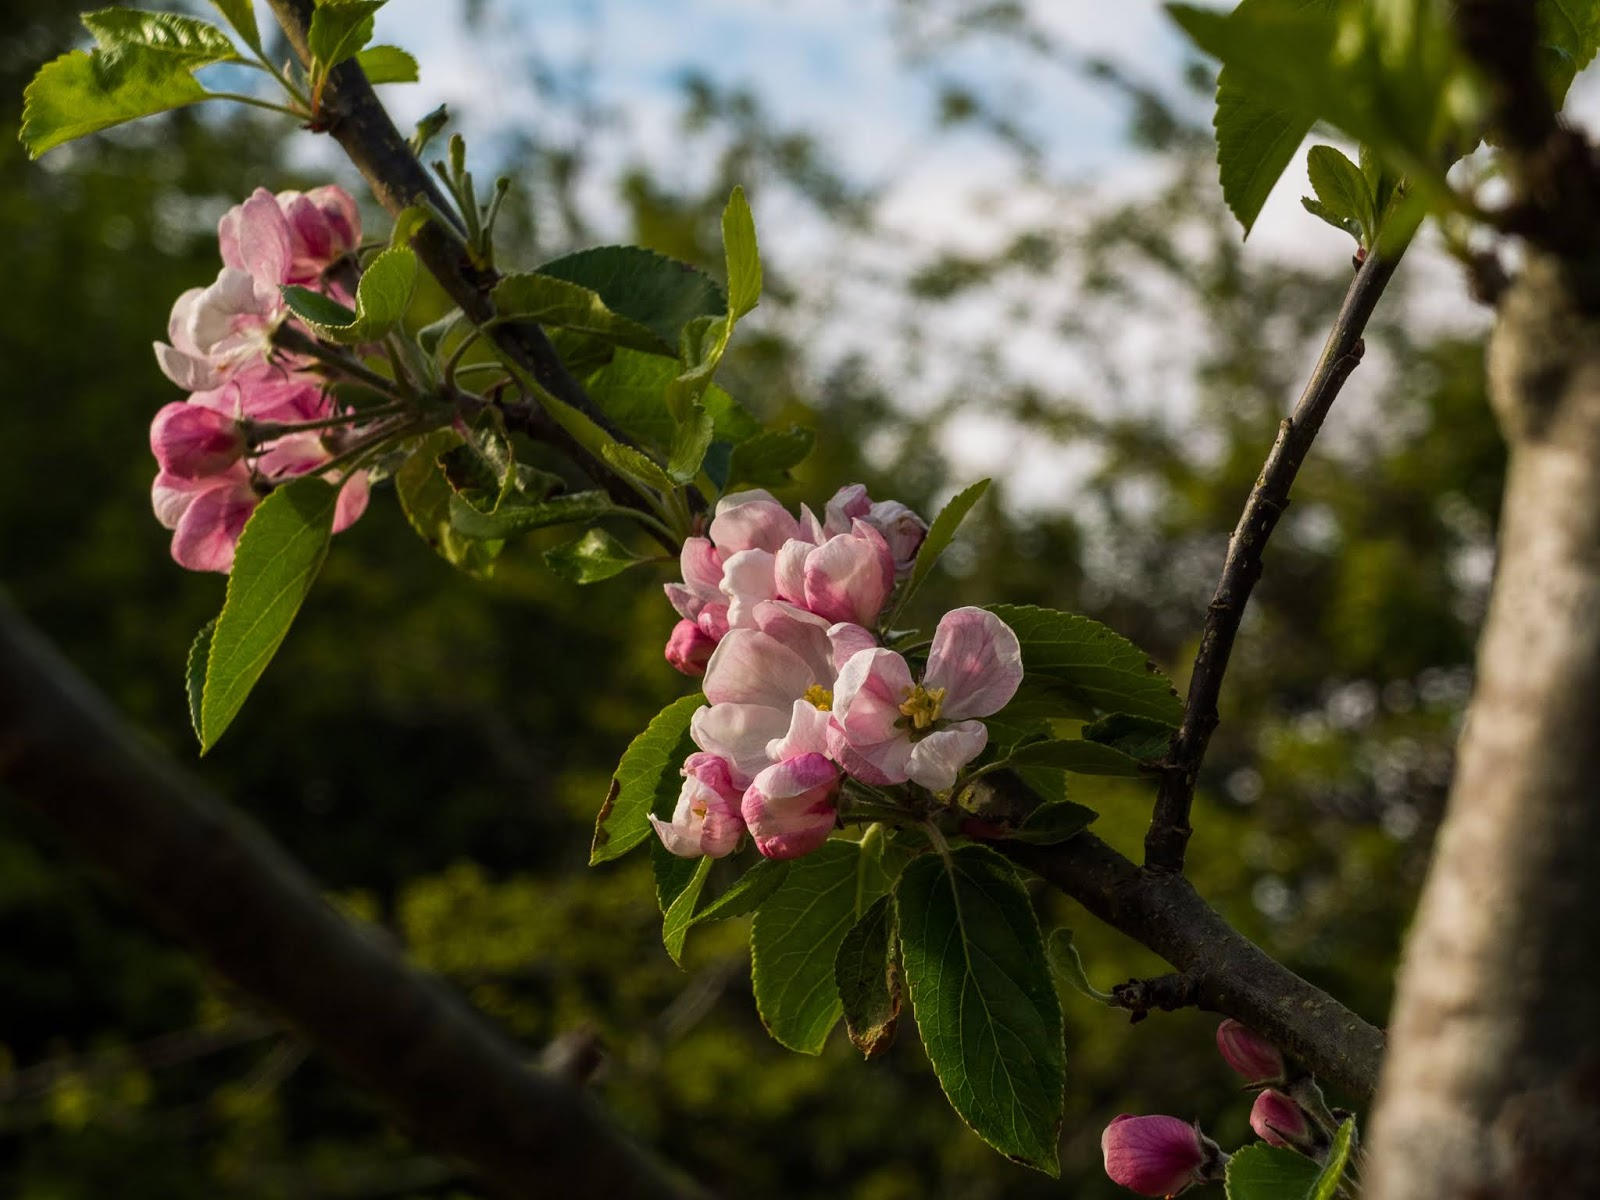 Pink apple tree flowers on a branch.